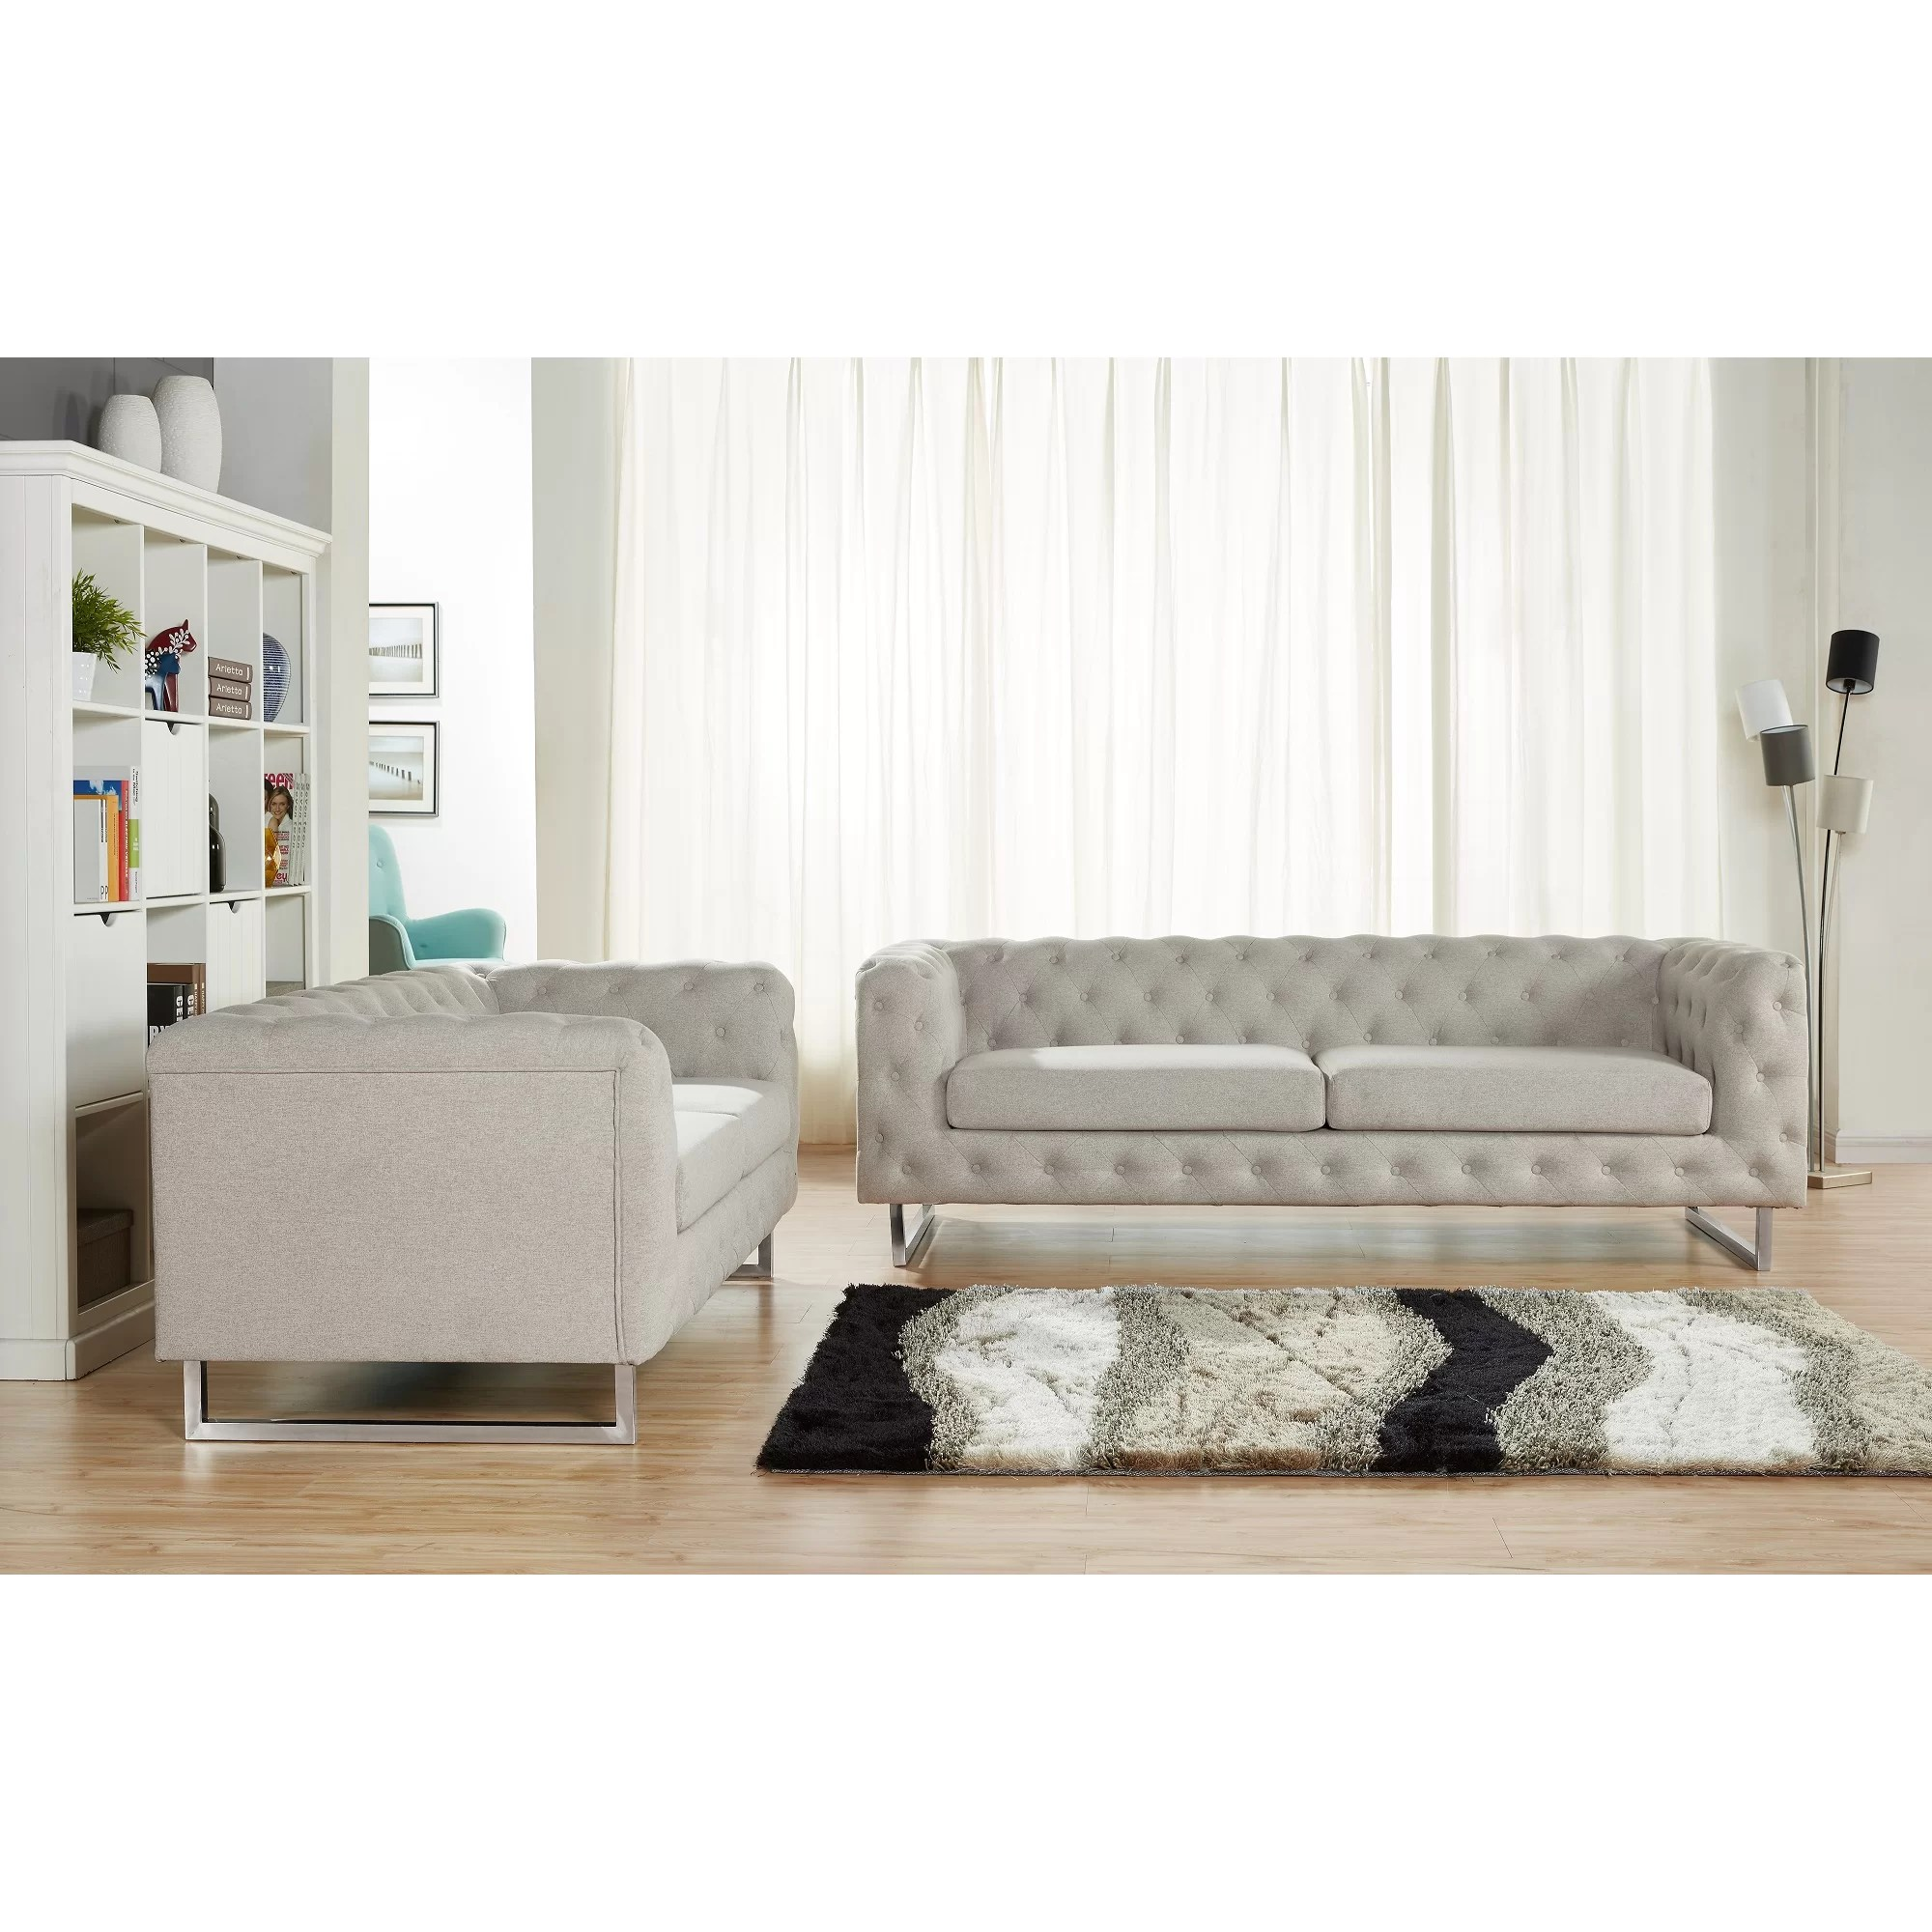 modern fabric sofa set bed home center abu dhabi container scroll 2 piece linen